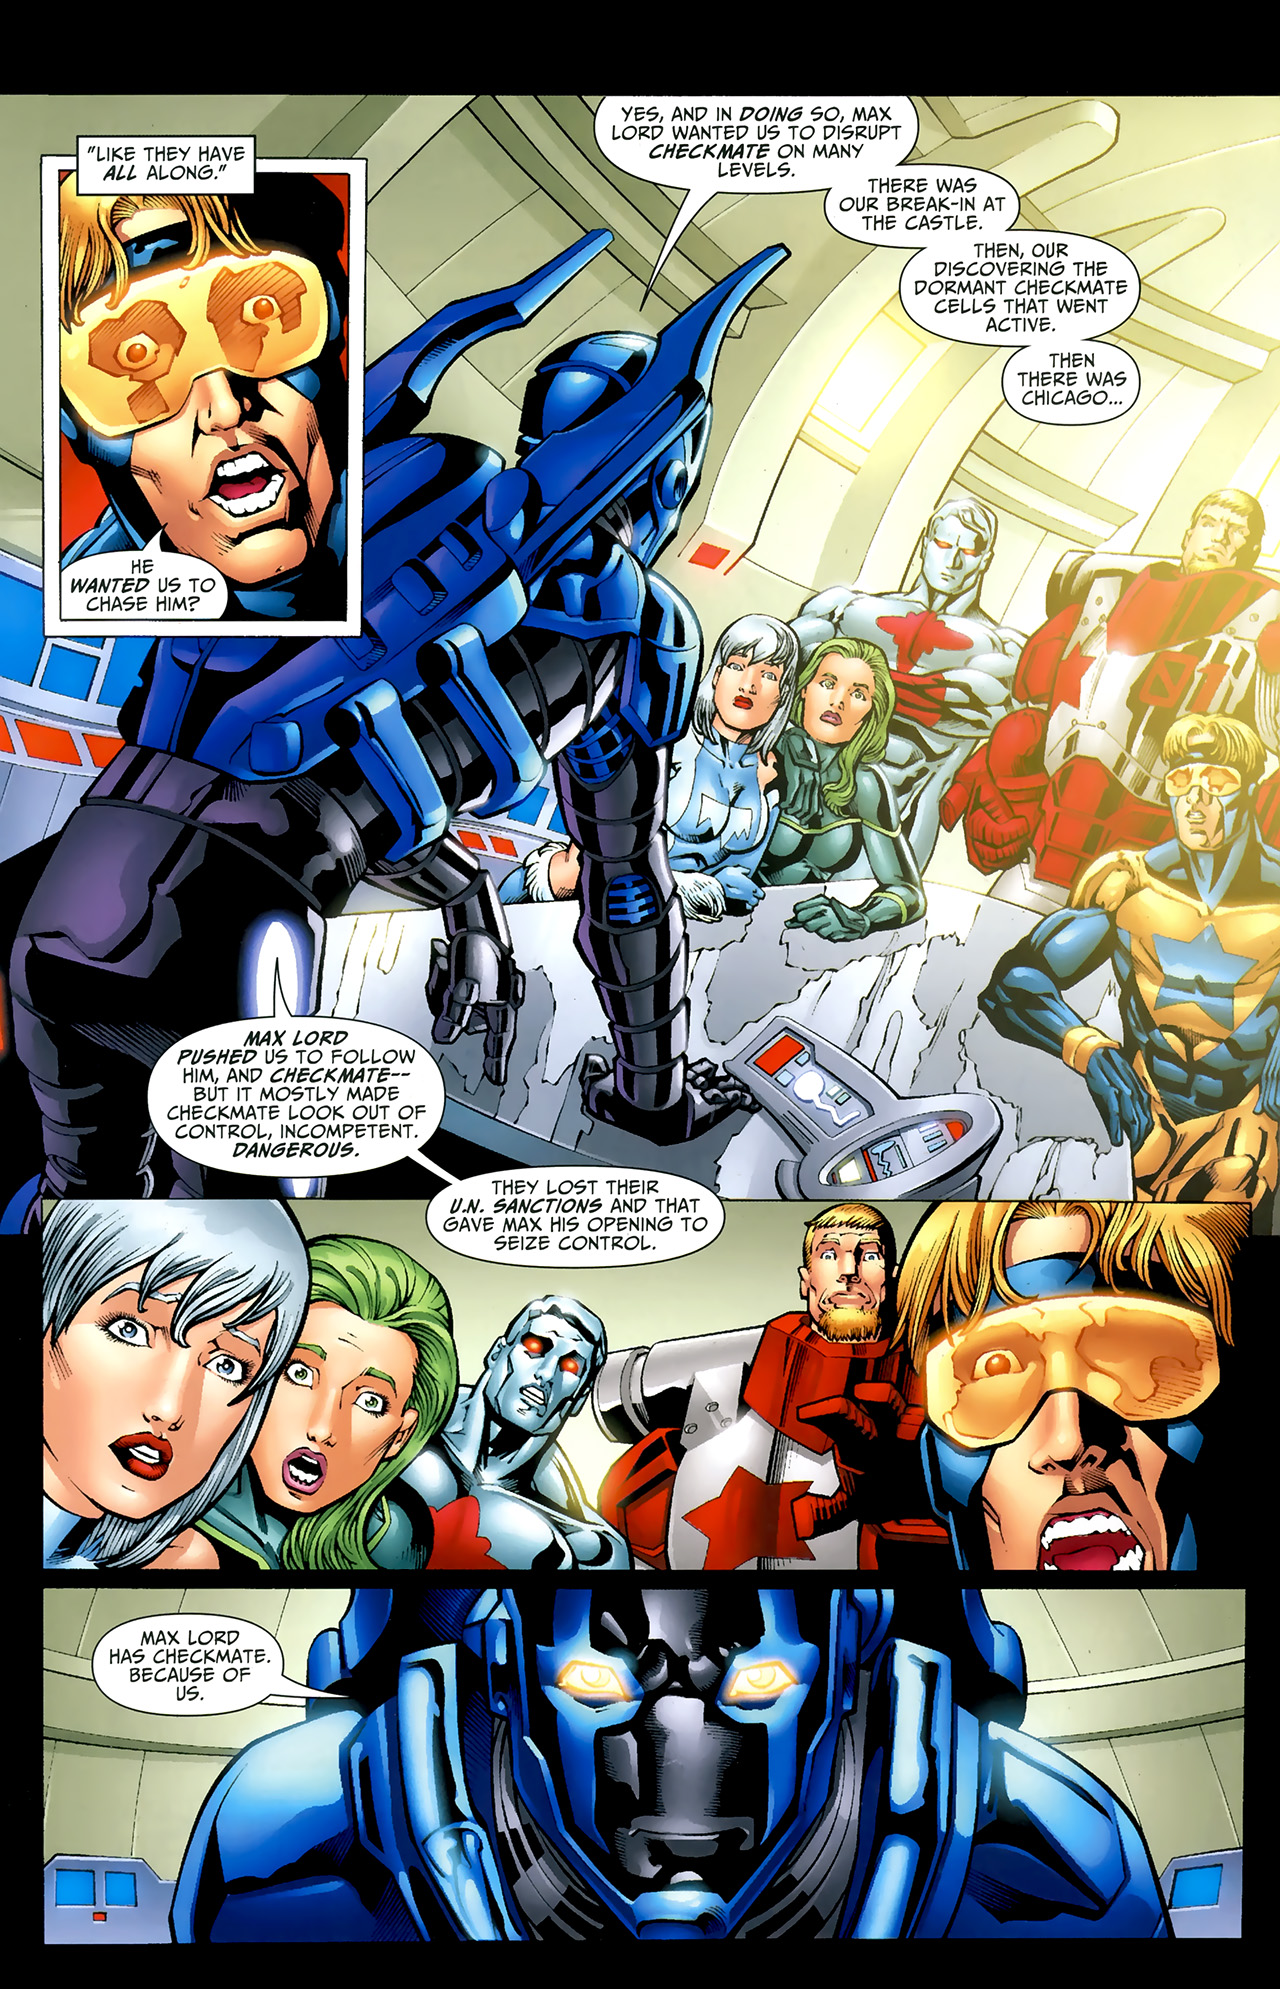 Read online Justice League: Generation Lost comic -  Issue #22 - 8